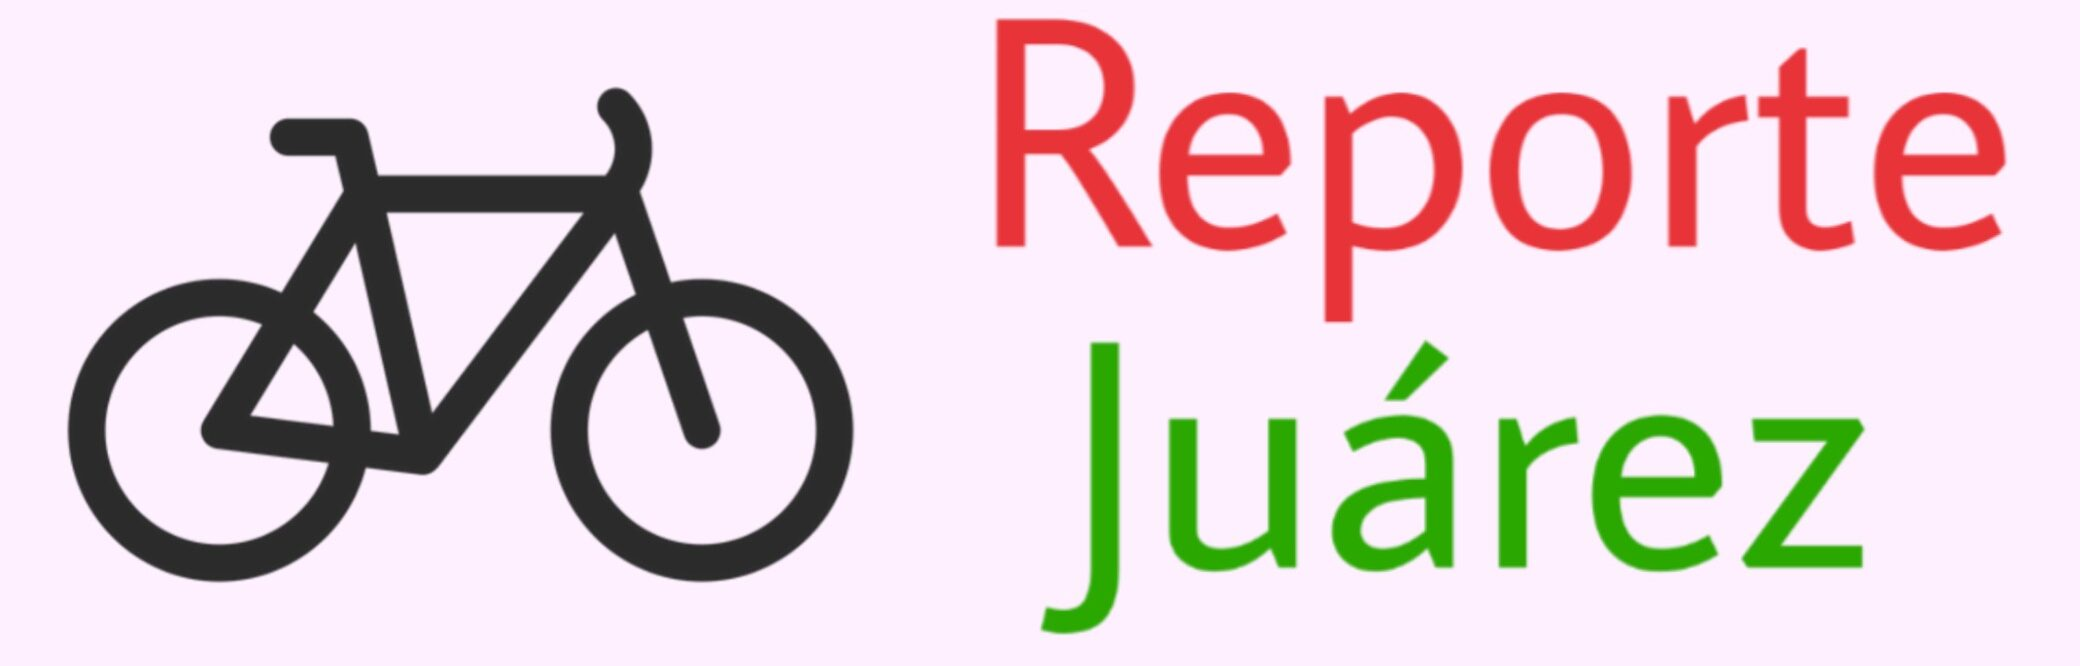 Reporte Juarez